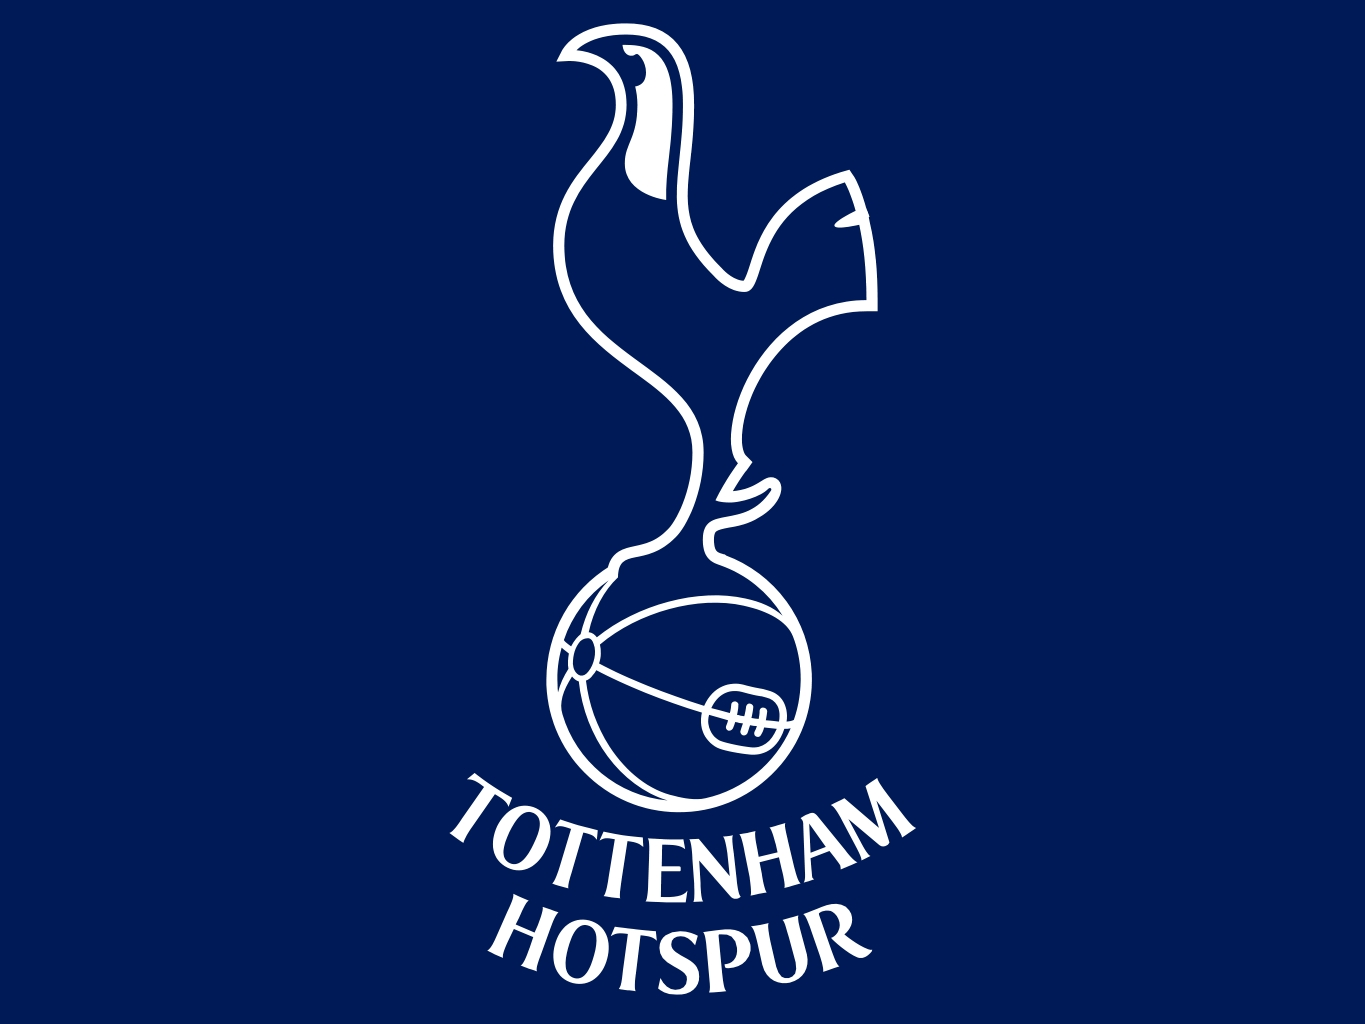 49 Tottenham Hotspur Hd Wallpaper On Wallpapersafari